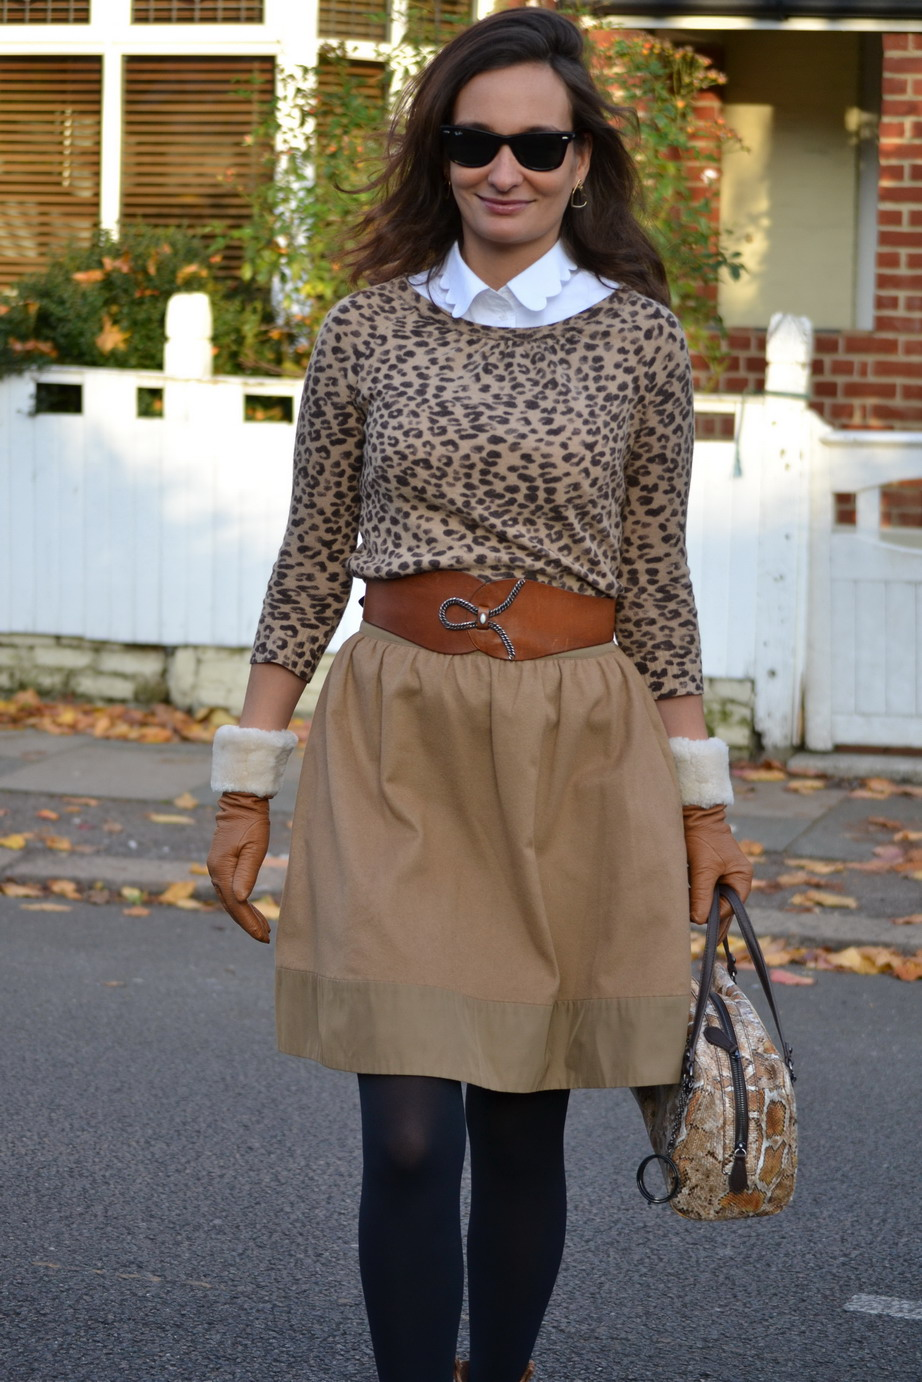 Leopard animal print streestyle London